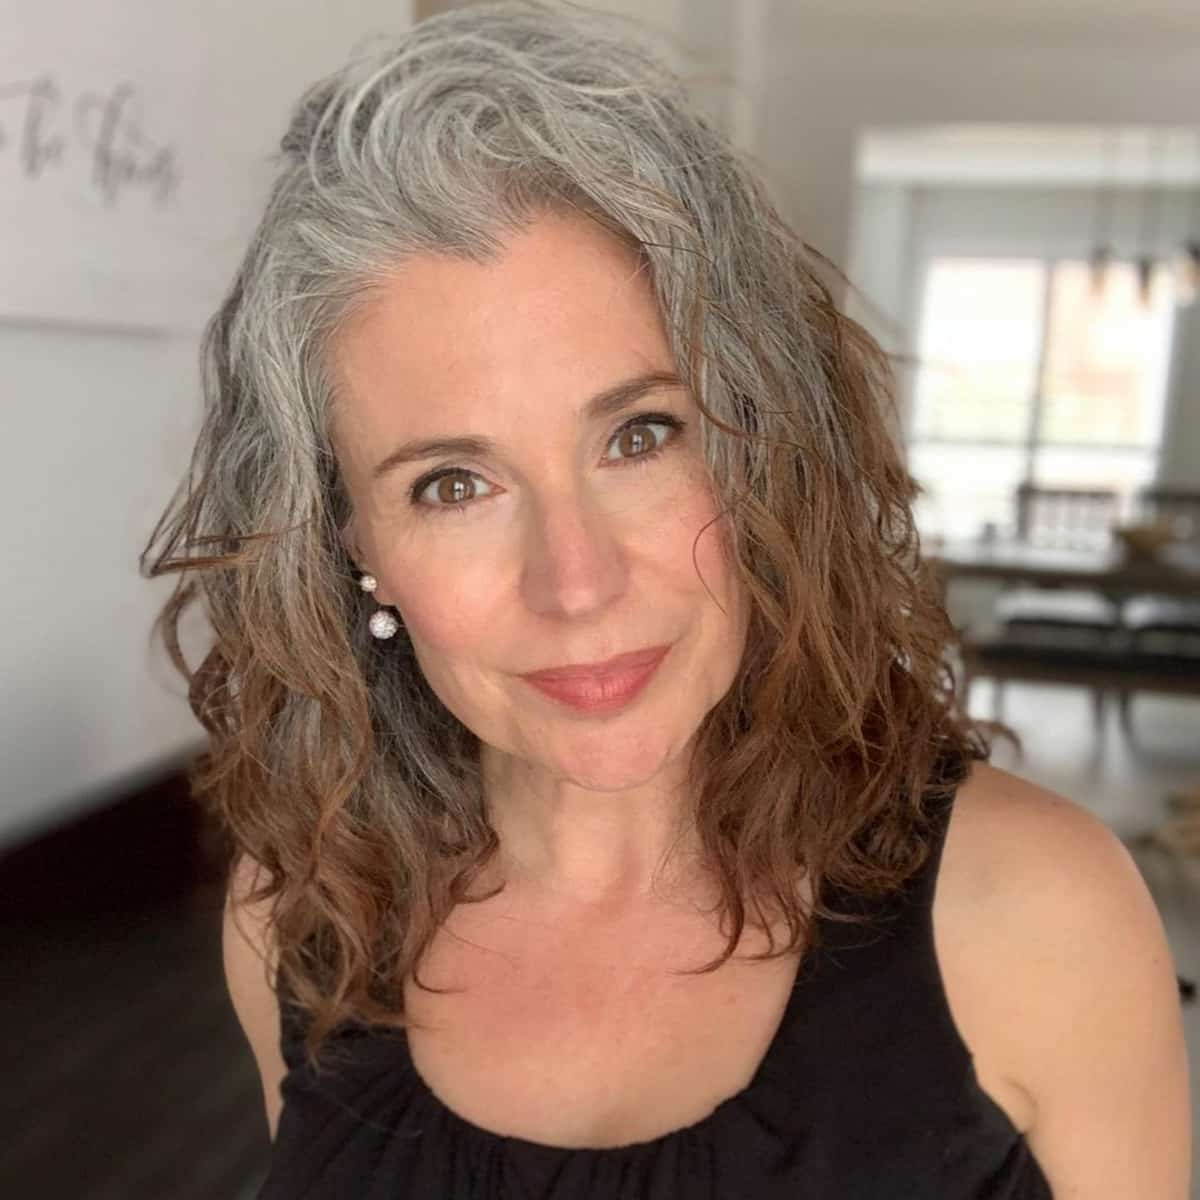 22 Best Haircuts & Hairstyles for Women Over 50 With Thick Hair